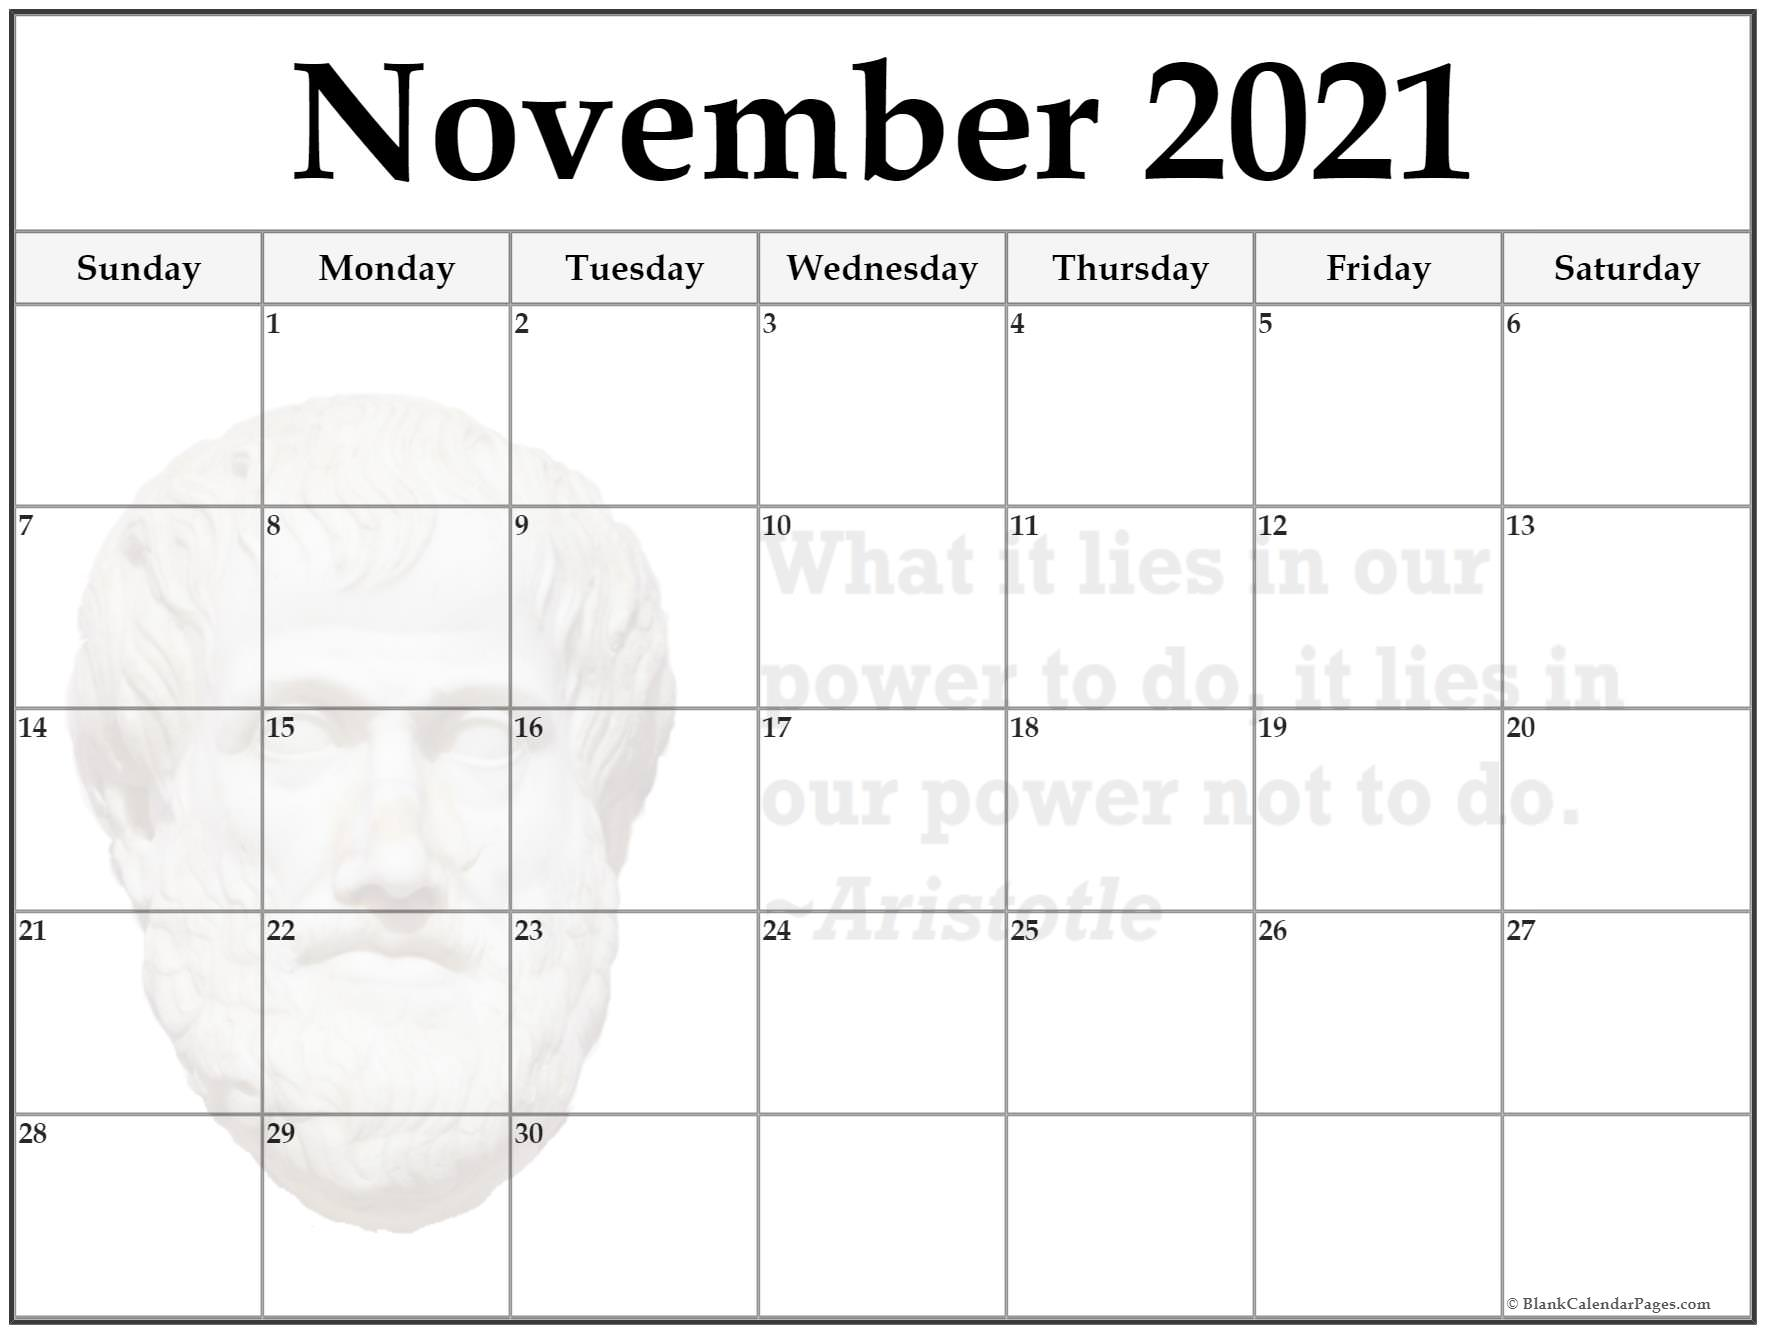 November calendar 2020What is lies in our power to do, it lies in our power not to do ~Aristotle